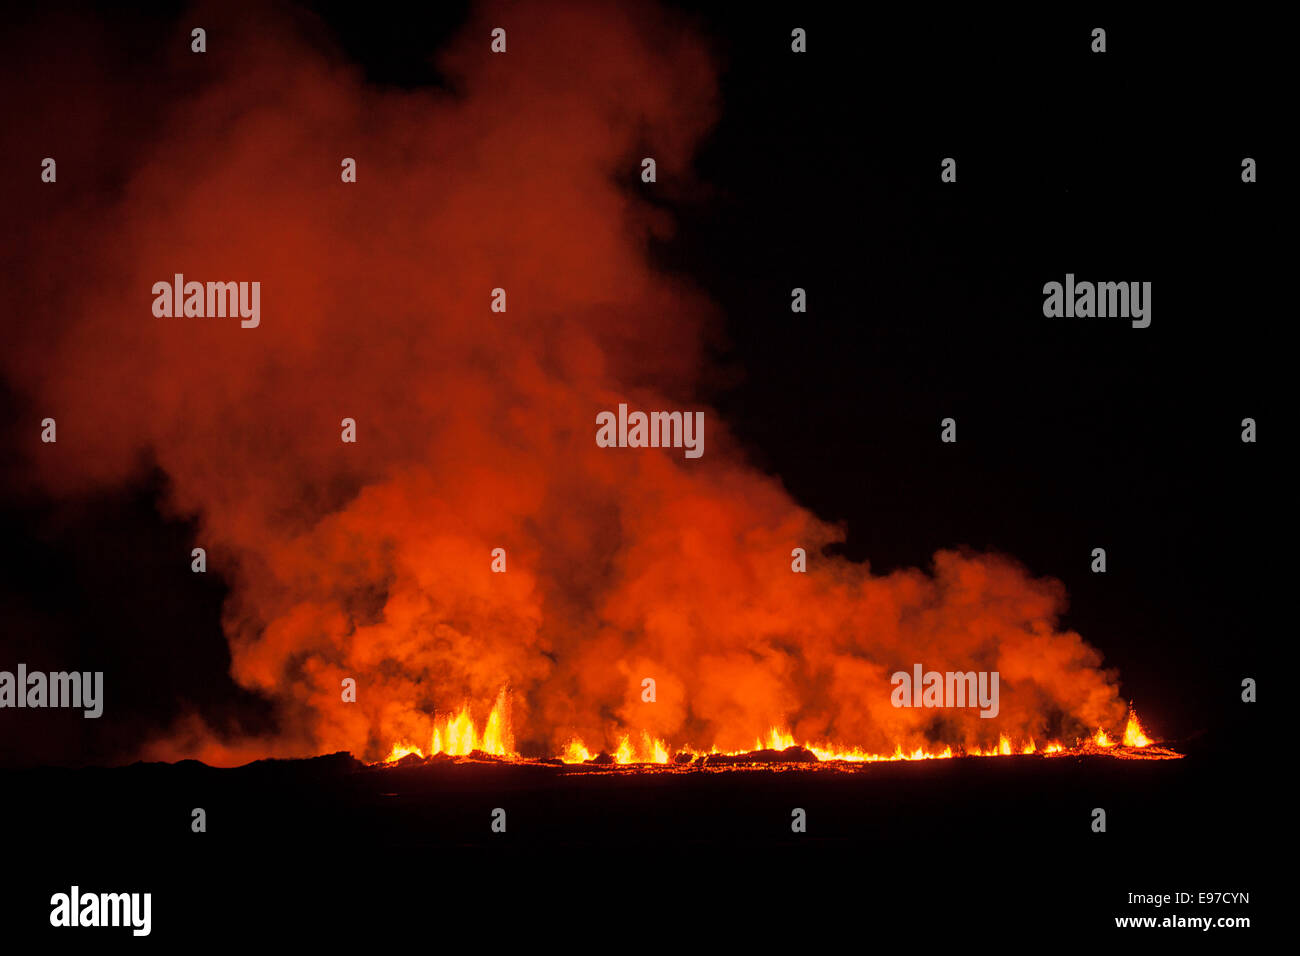 wide view at night of the 2014 eruption in Iceland - Stock Image